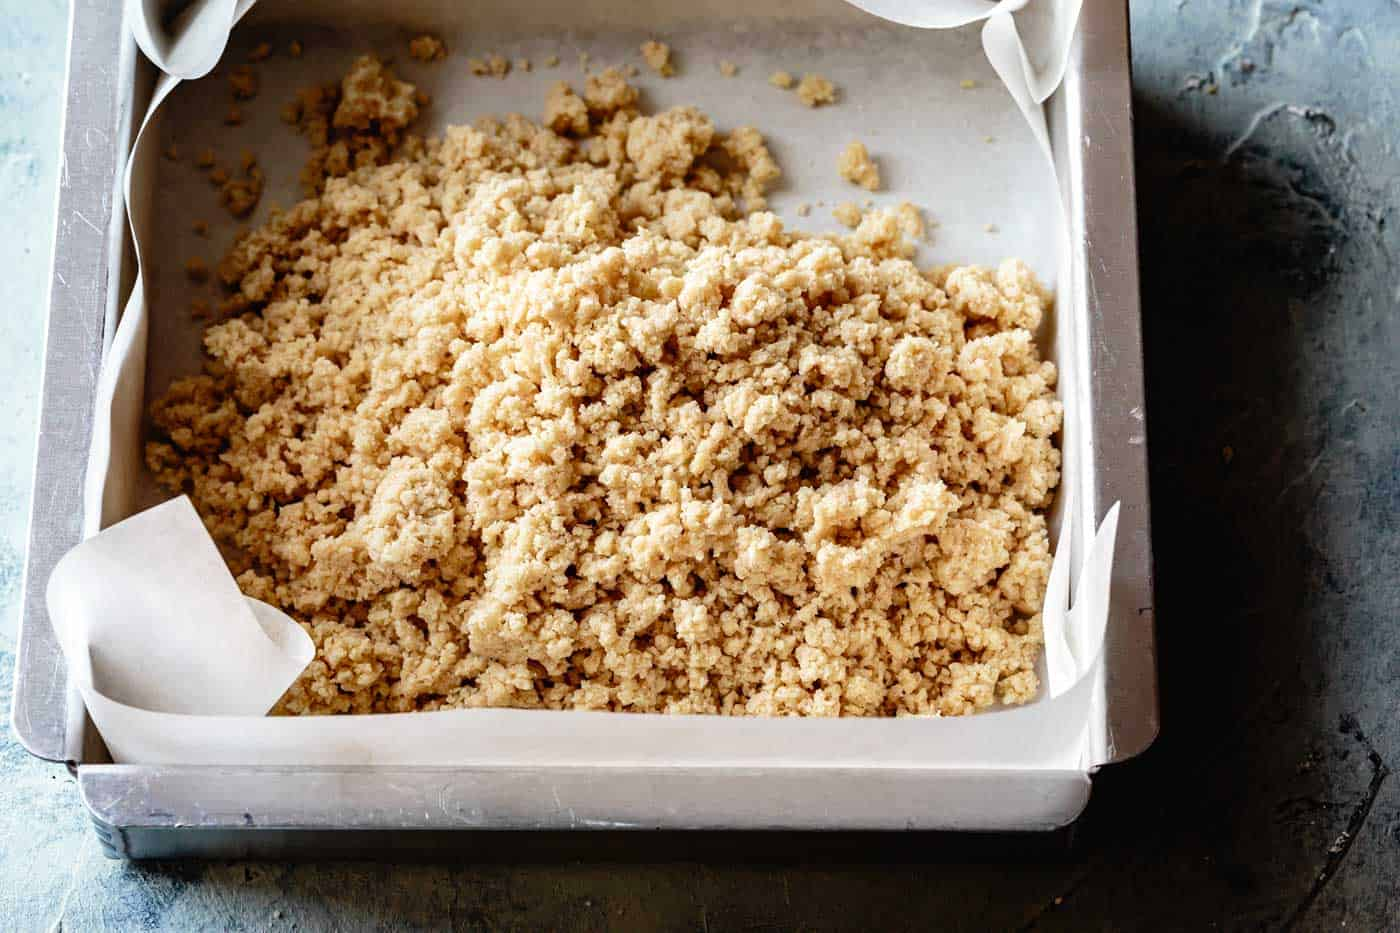 crumble dough for gluten-free shortbread crust in a pan